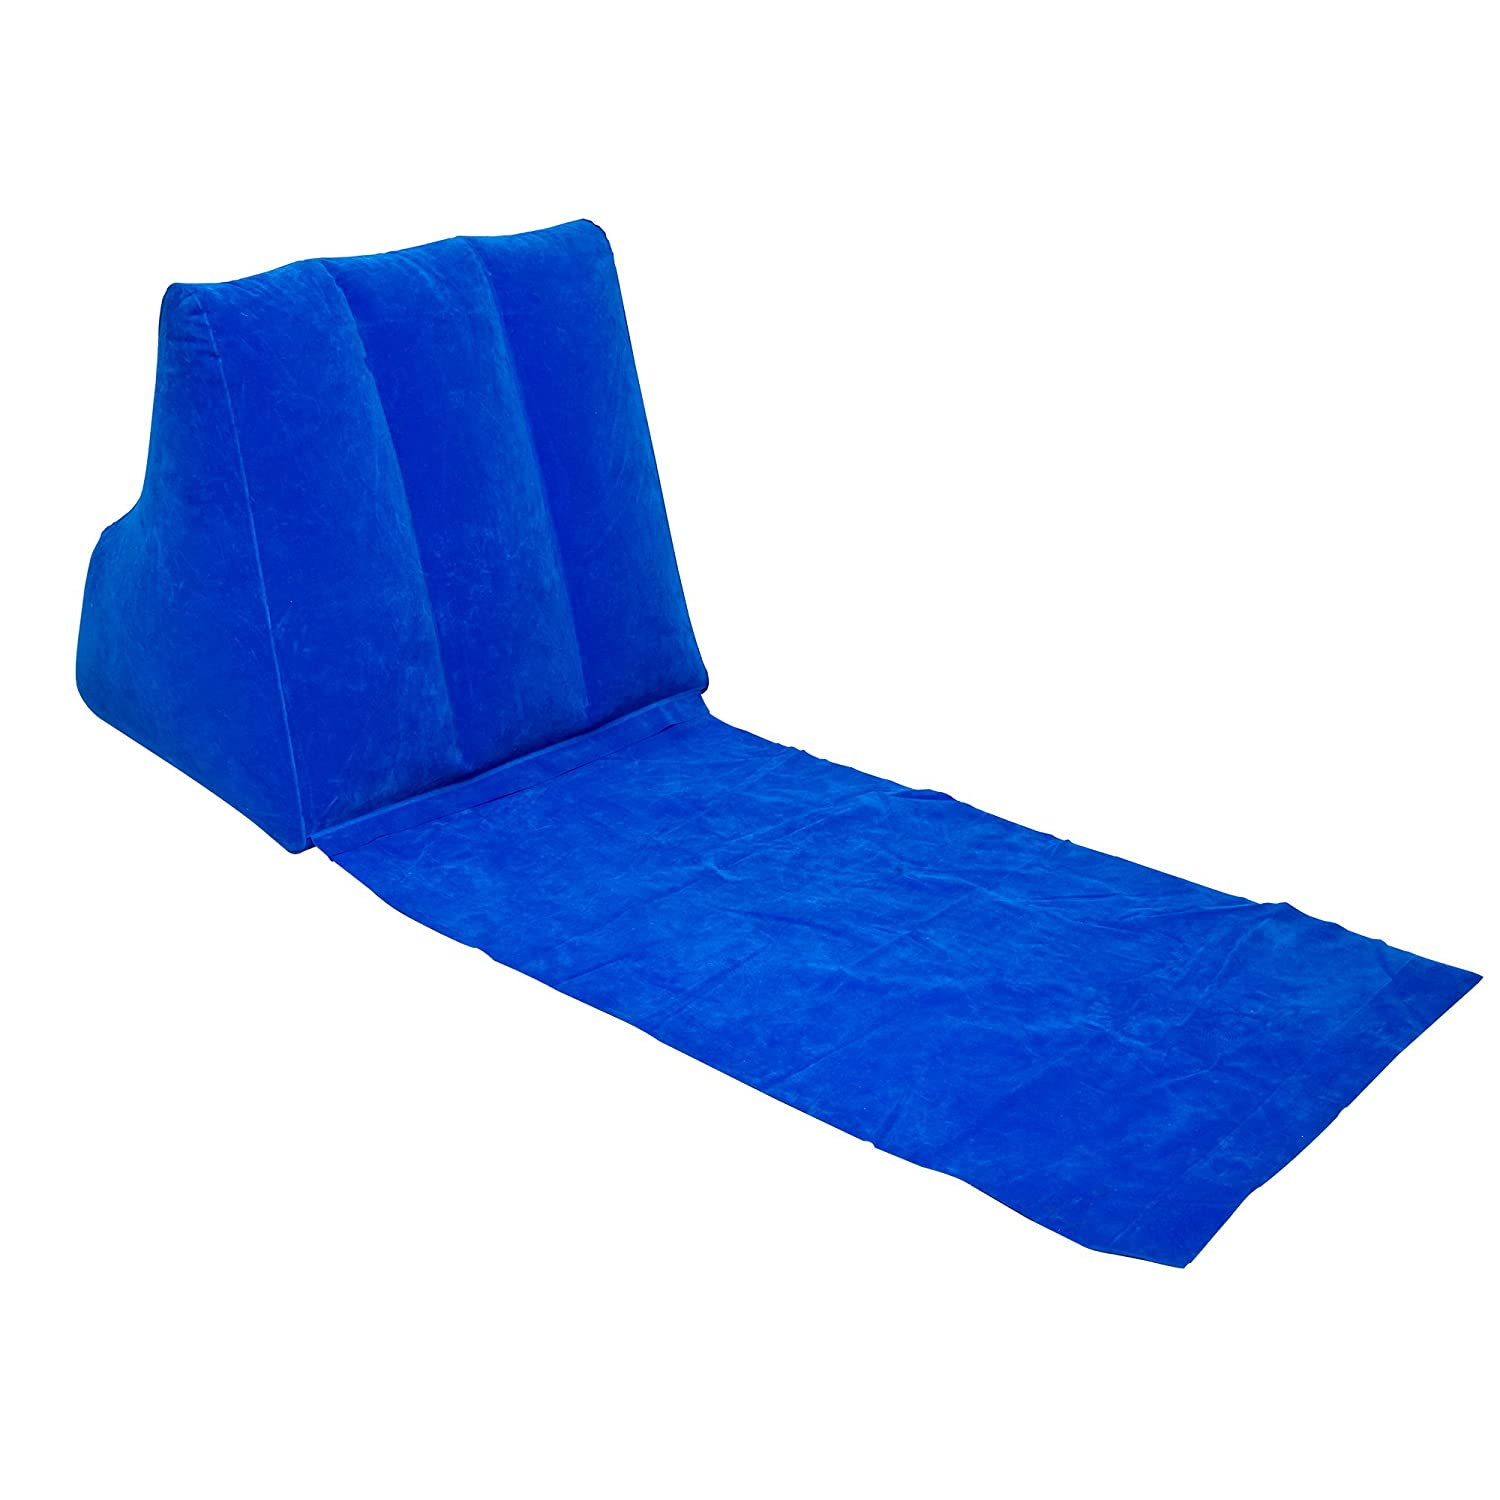 Midasity Ltd Wicked Wedge Inflatable Lounger Blue Amazon